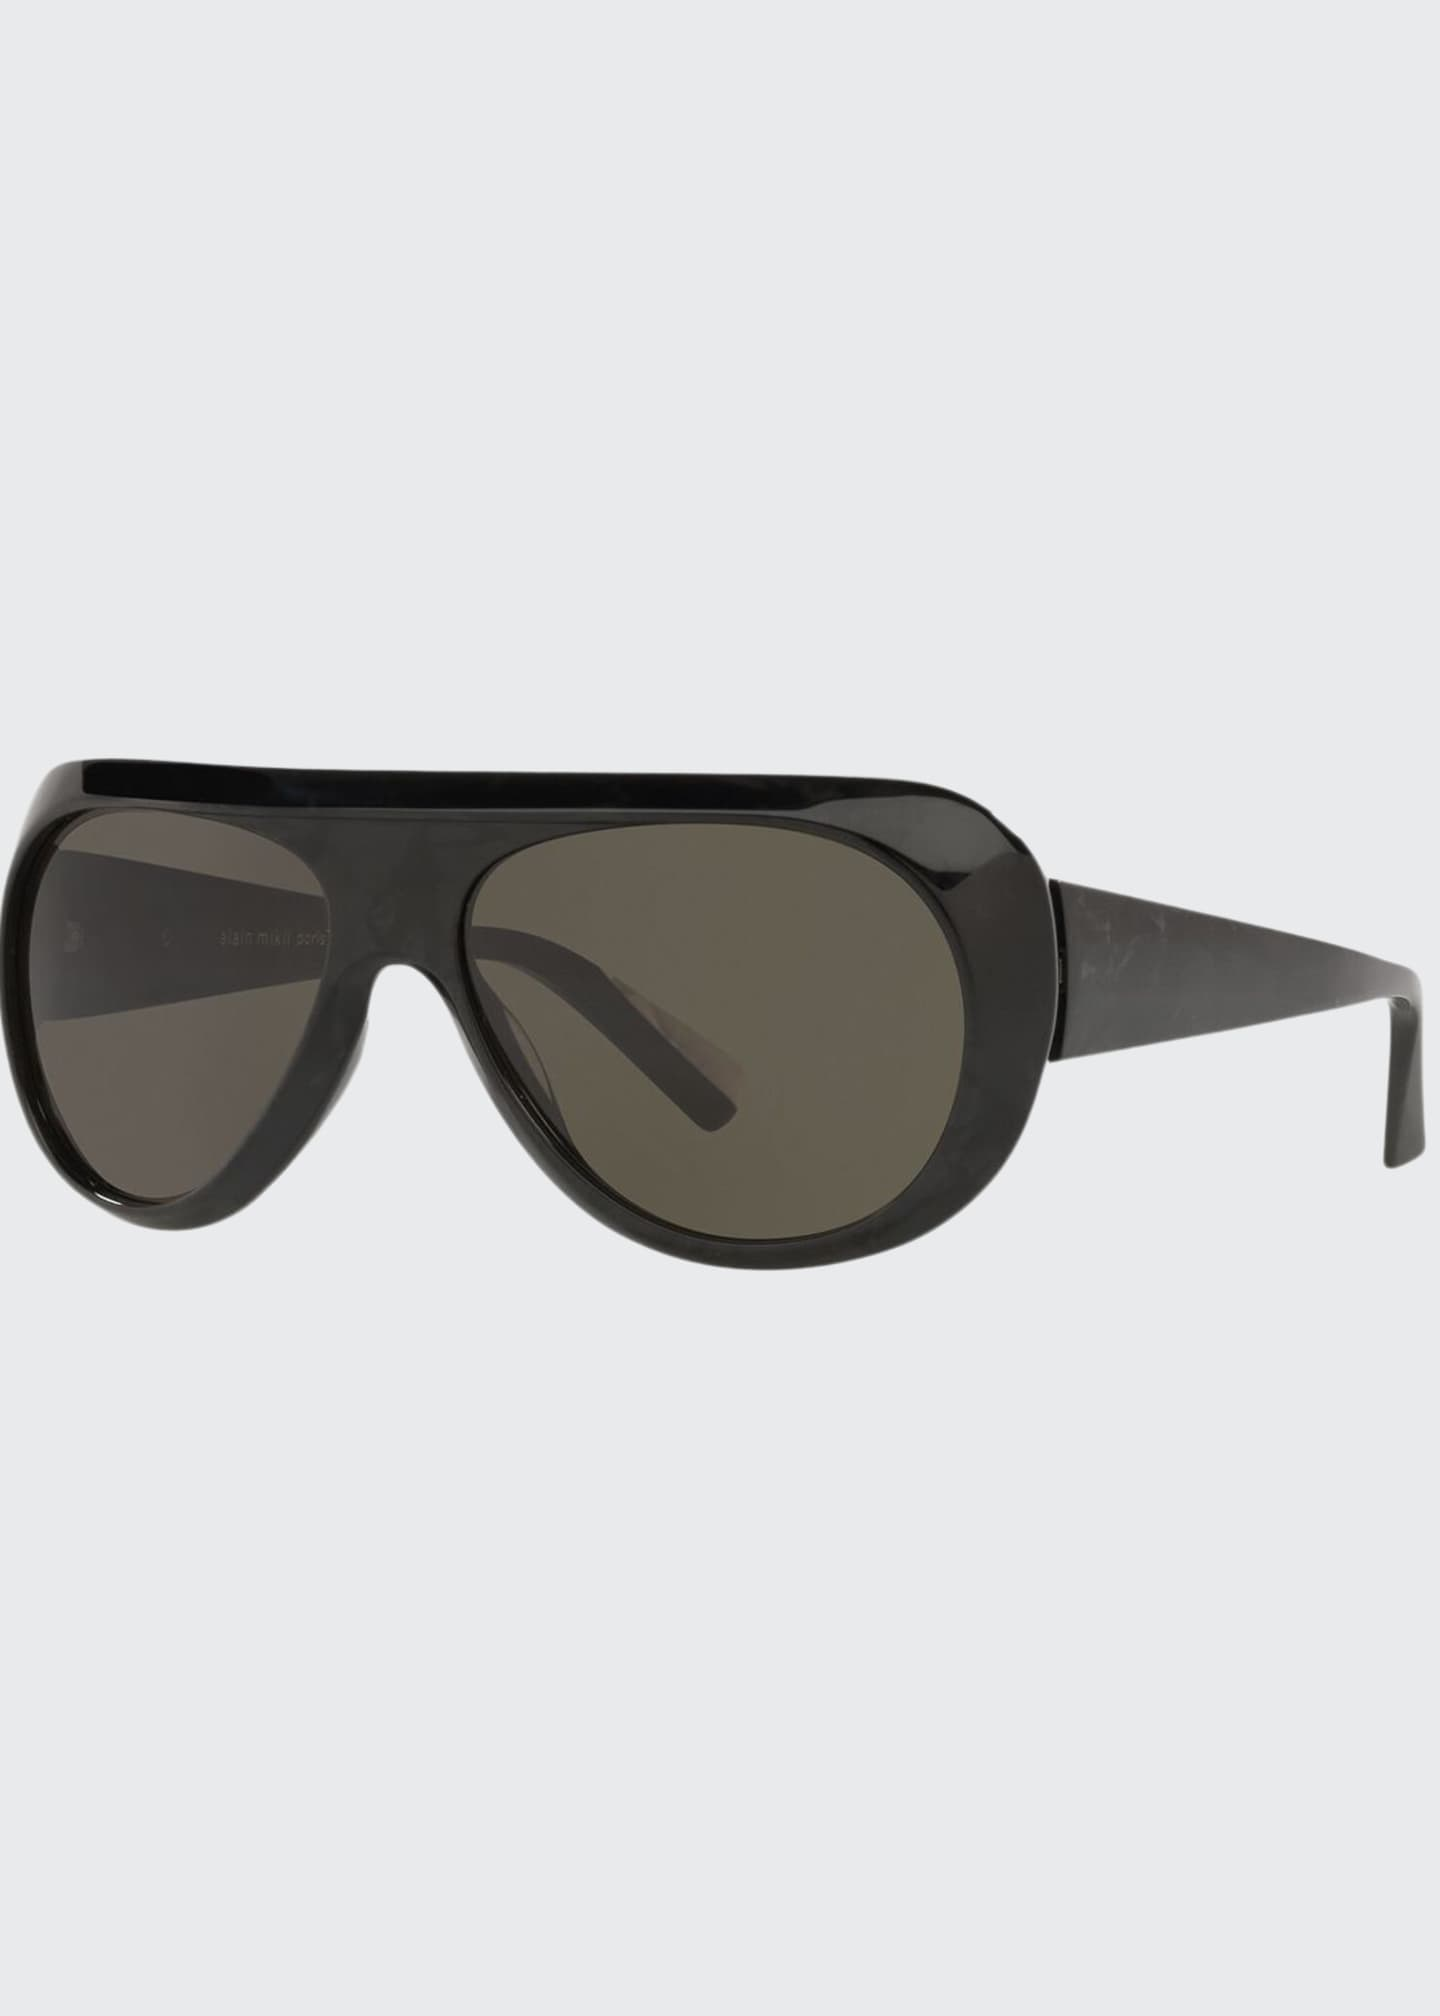 Alain Mikli Marmion Acetate Aviator Sunglasses